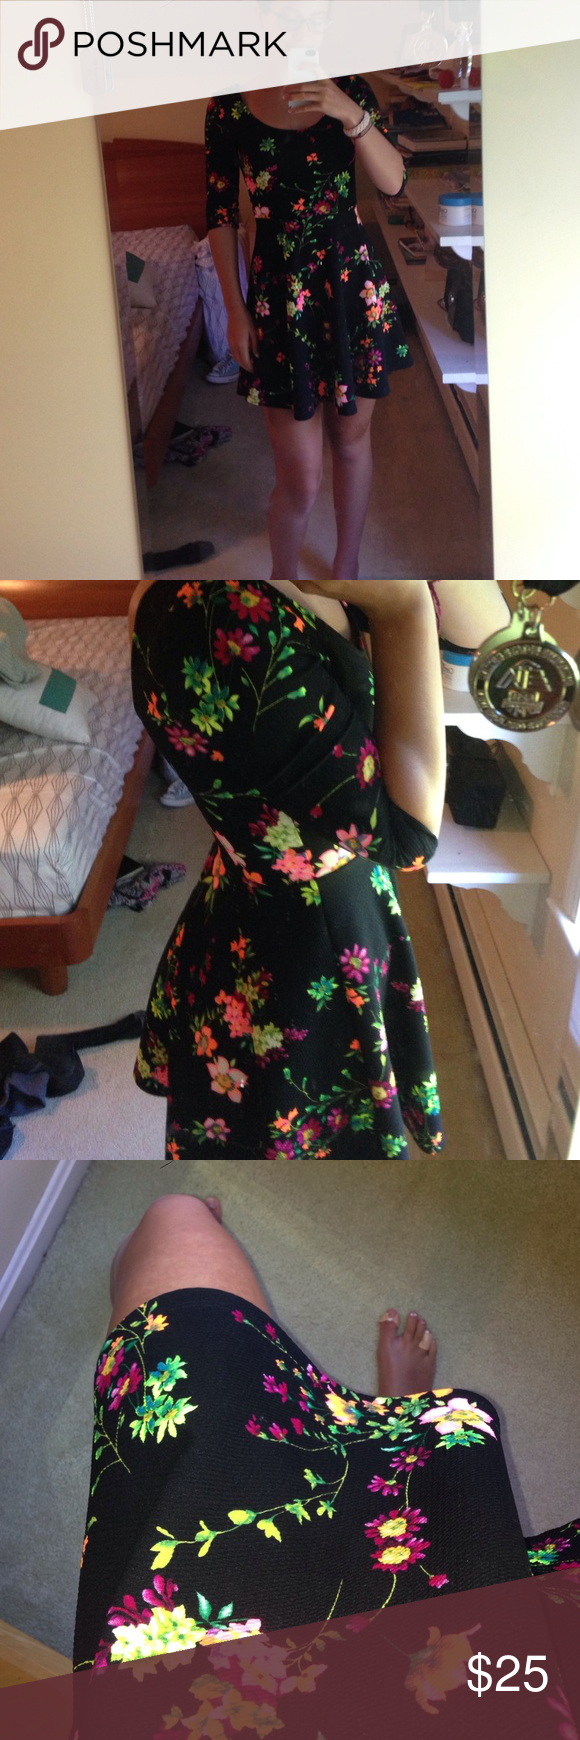 LUSH neon floral/black dress worn only twice, comfy and beautiful dress. bought at Nordstrom's. sinched waist, deep cut back and 3/4 sleeves. Lush Dresses